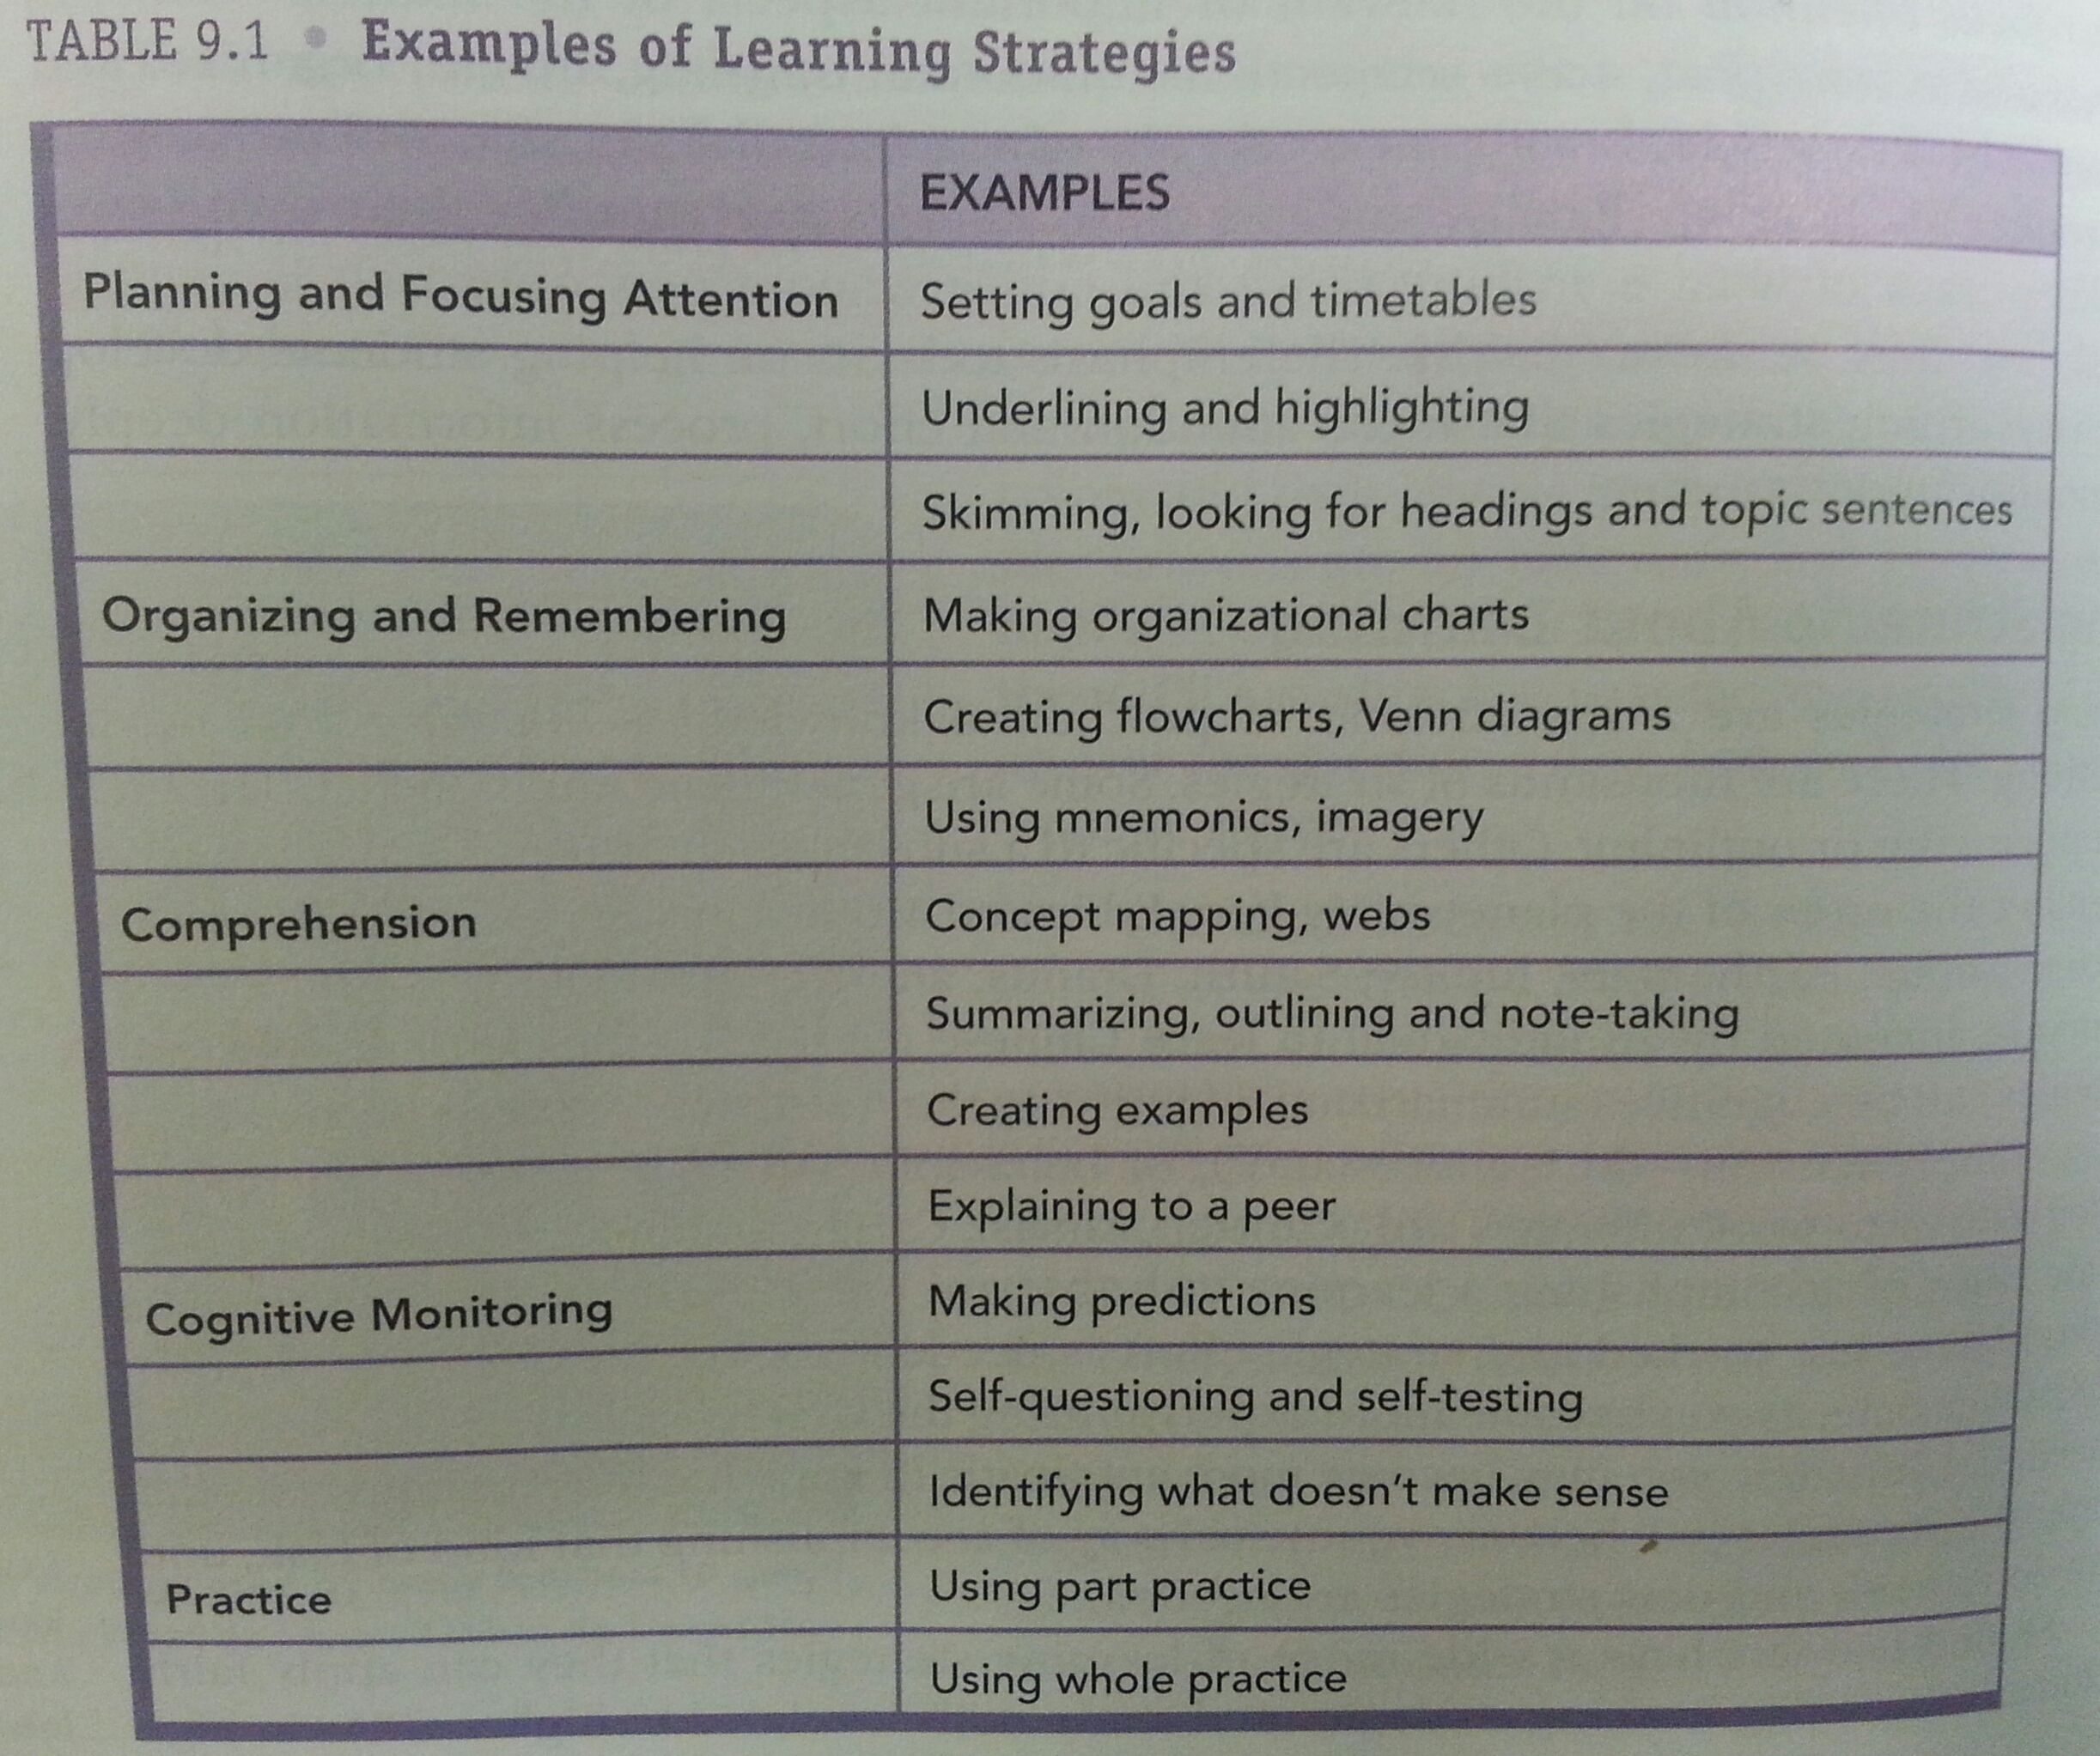 The Ten Learning Strategies Given By John Dunlosky Are